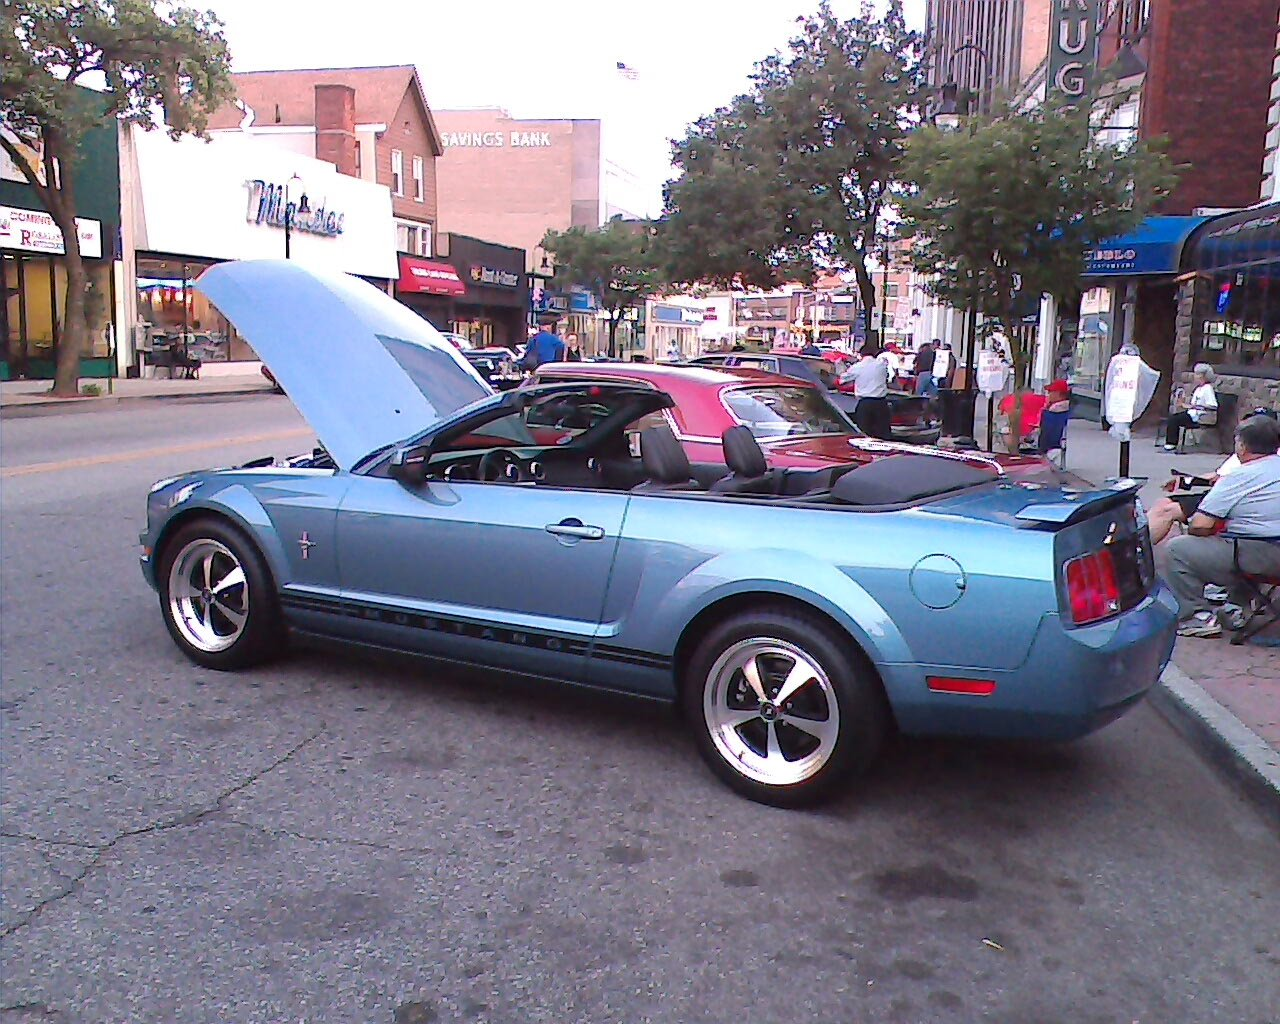 2006 Ford Mustang Rims, 2006 Ford Mustang Wheels at OriginalWheels.com